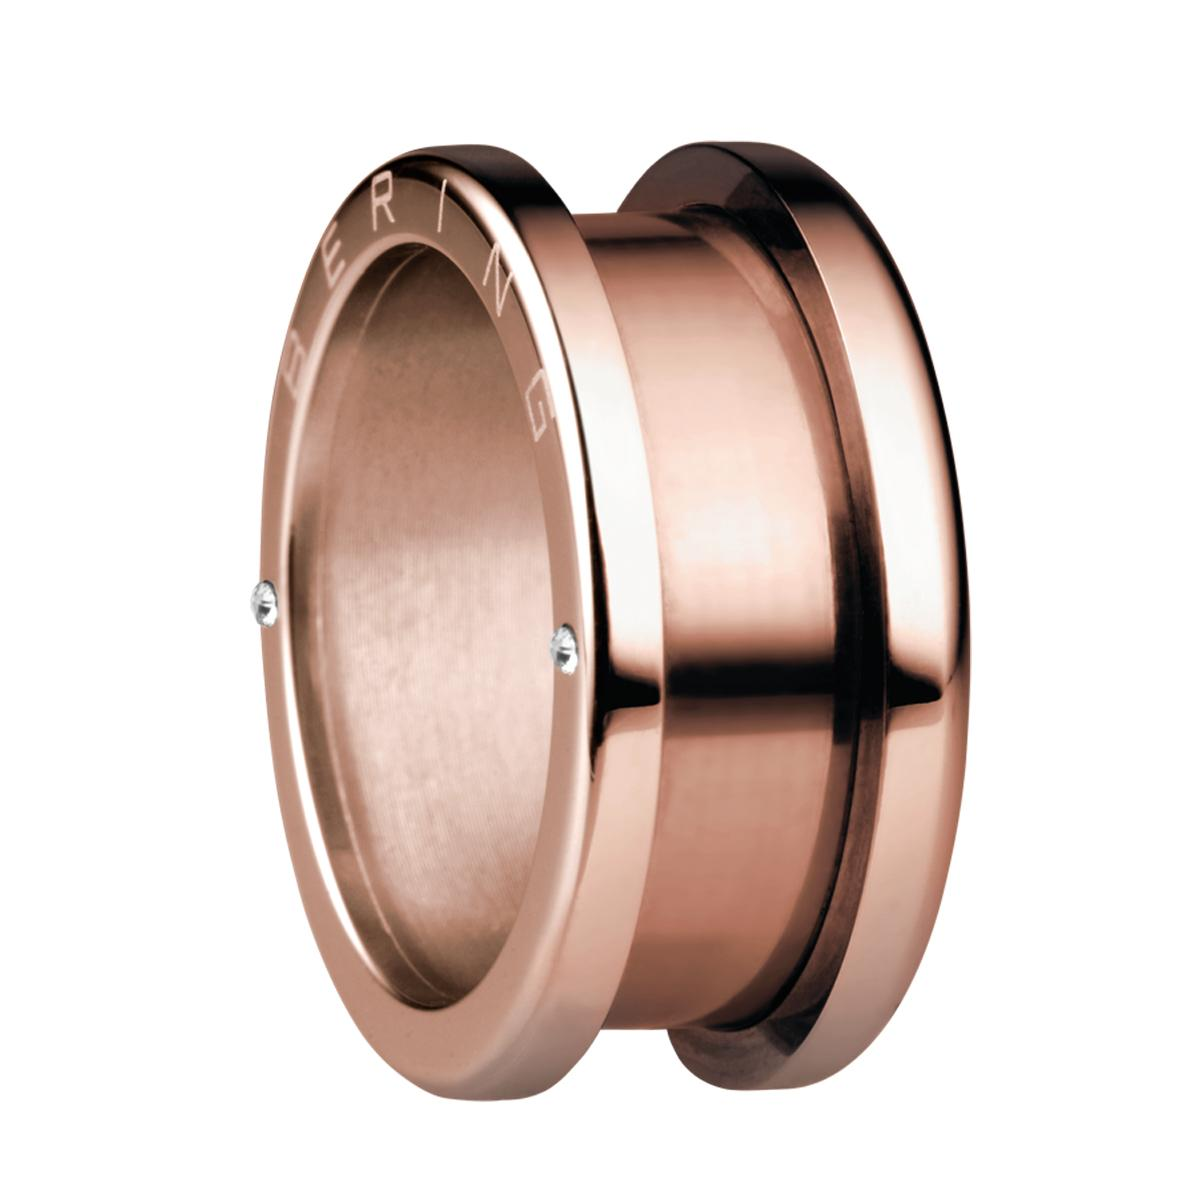 Bering Outer Ring 5203074 1